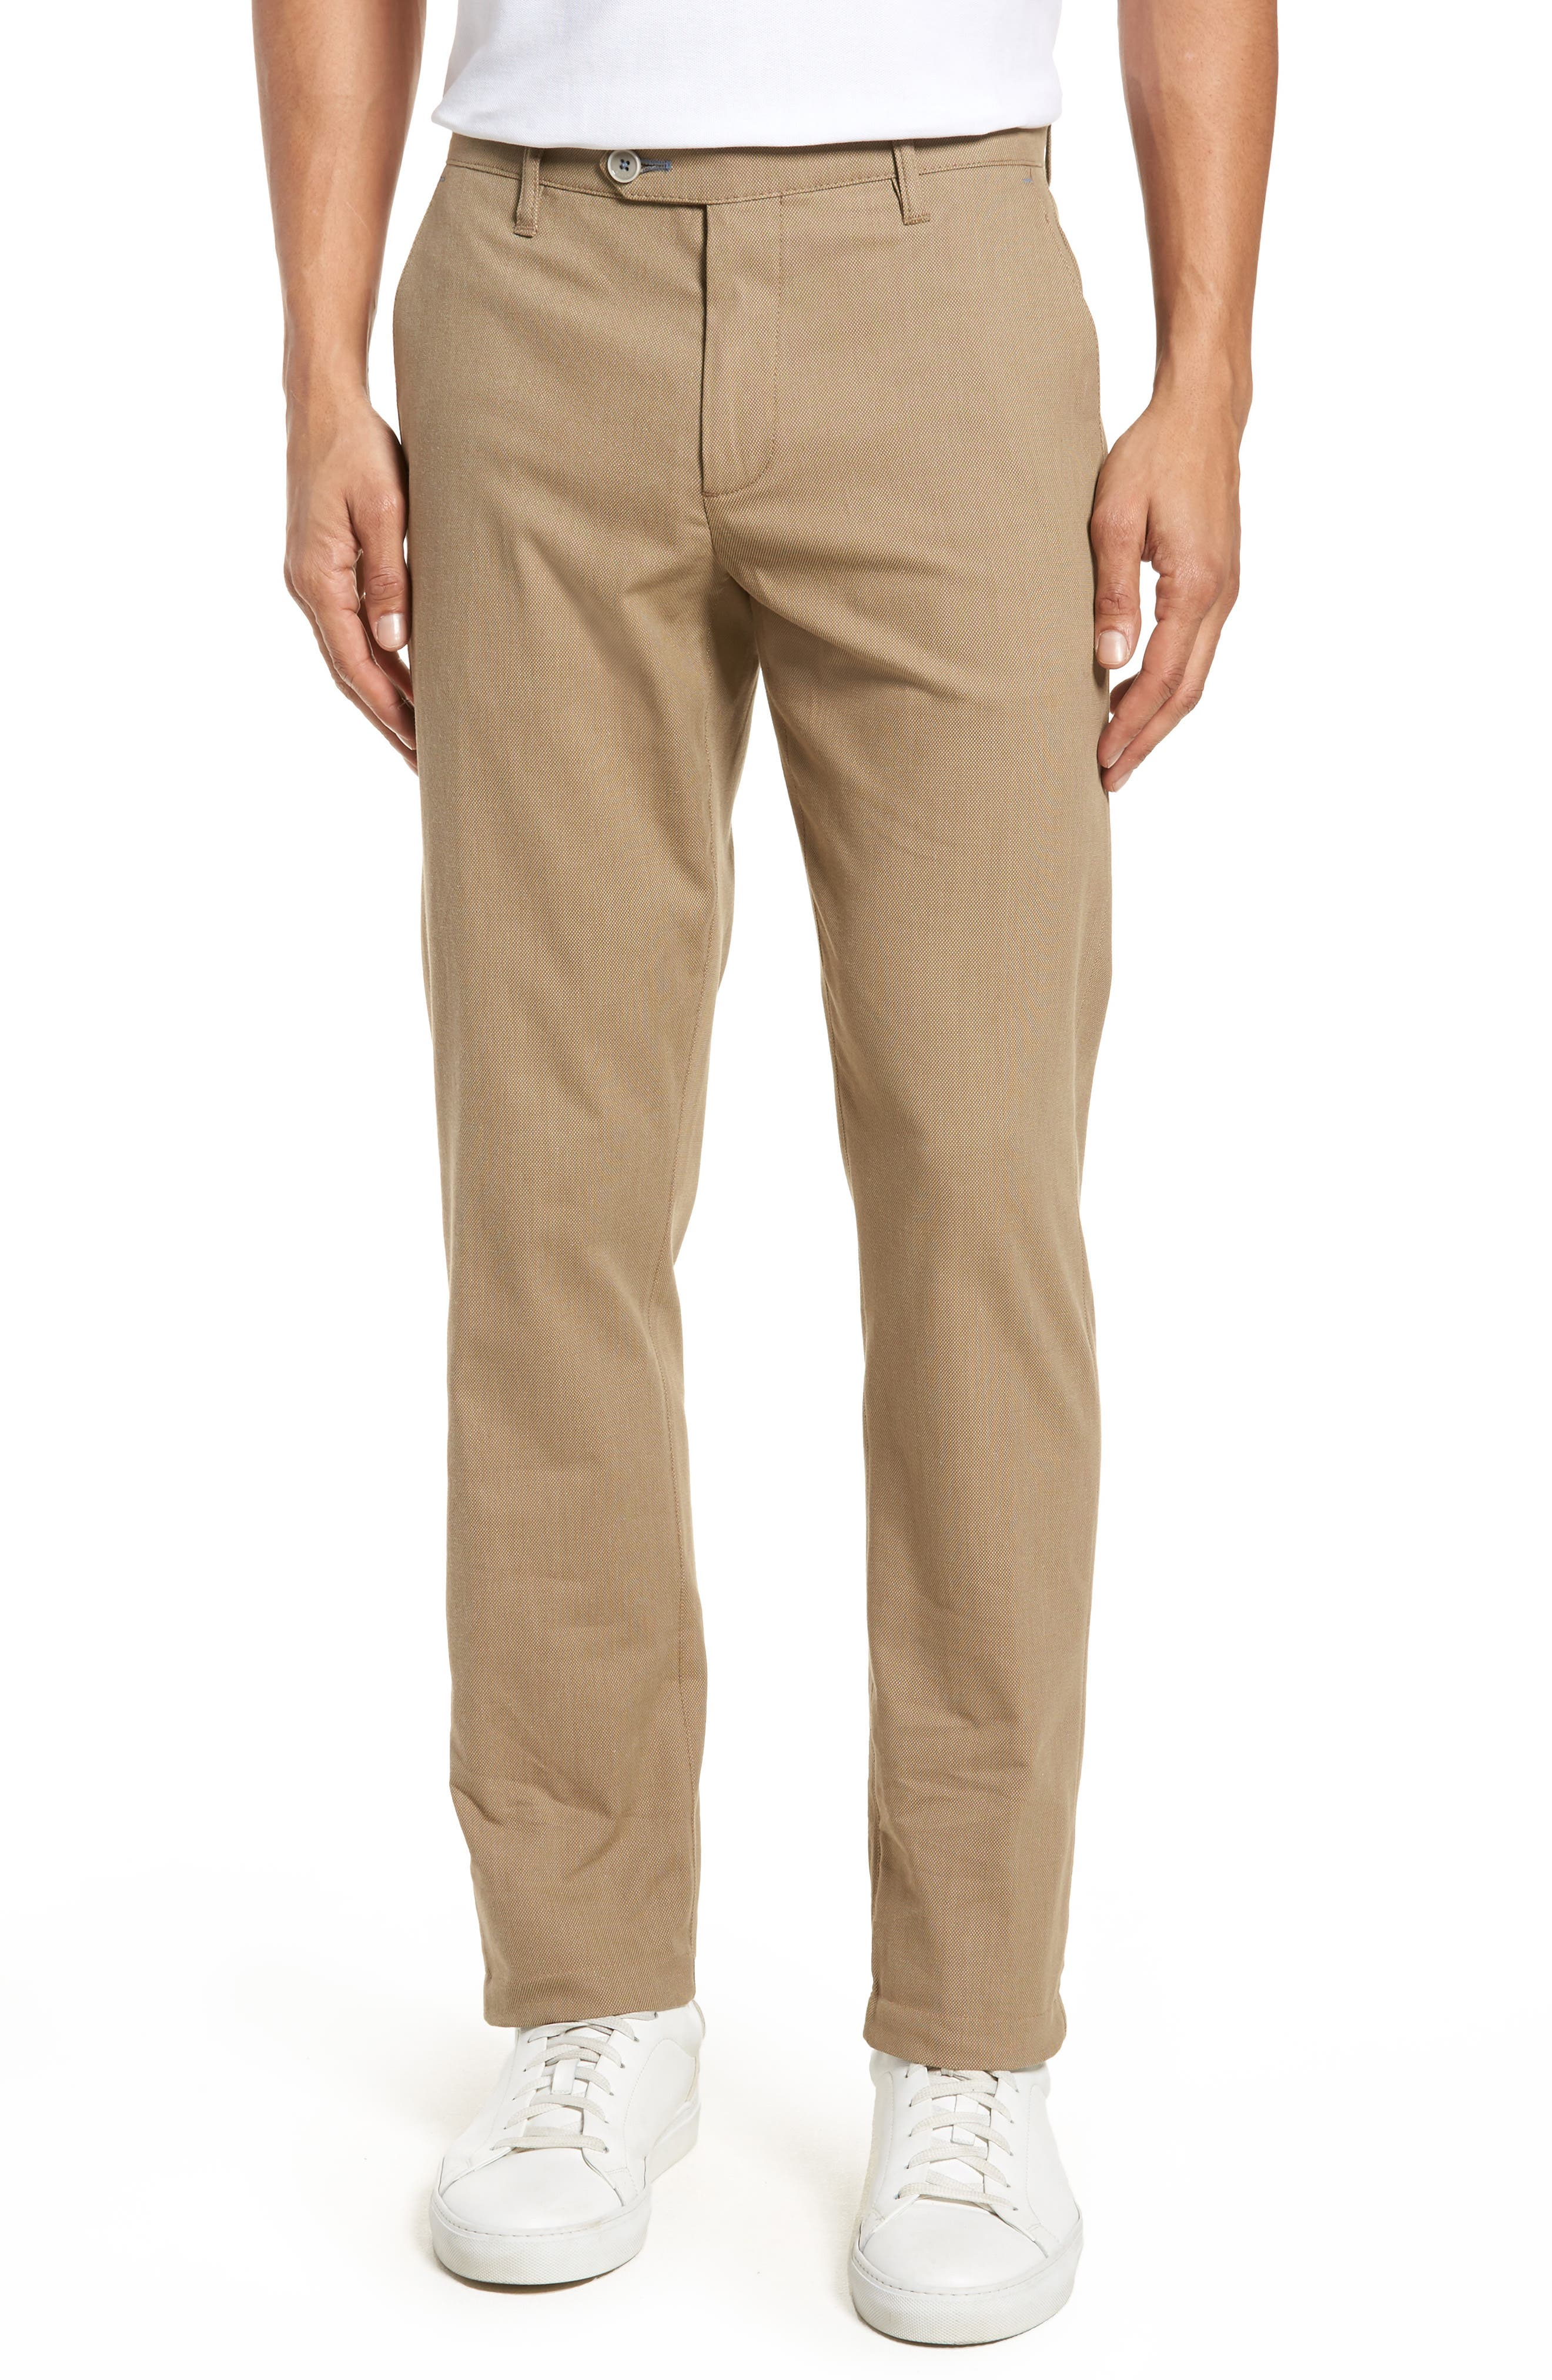 Alternate Image 1 Selected - Ted Baker London Holclas Classic Fit Chino Pants